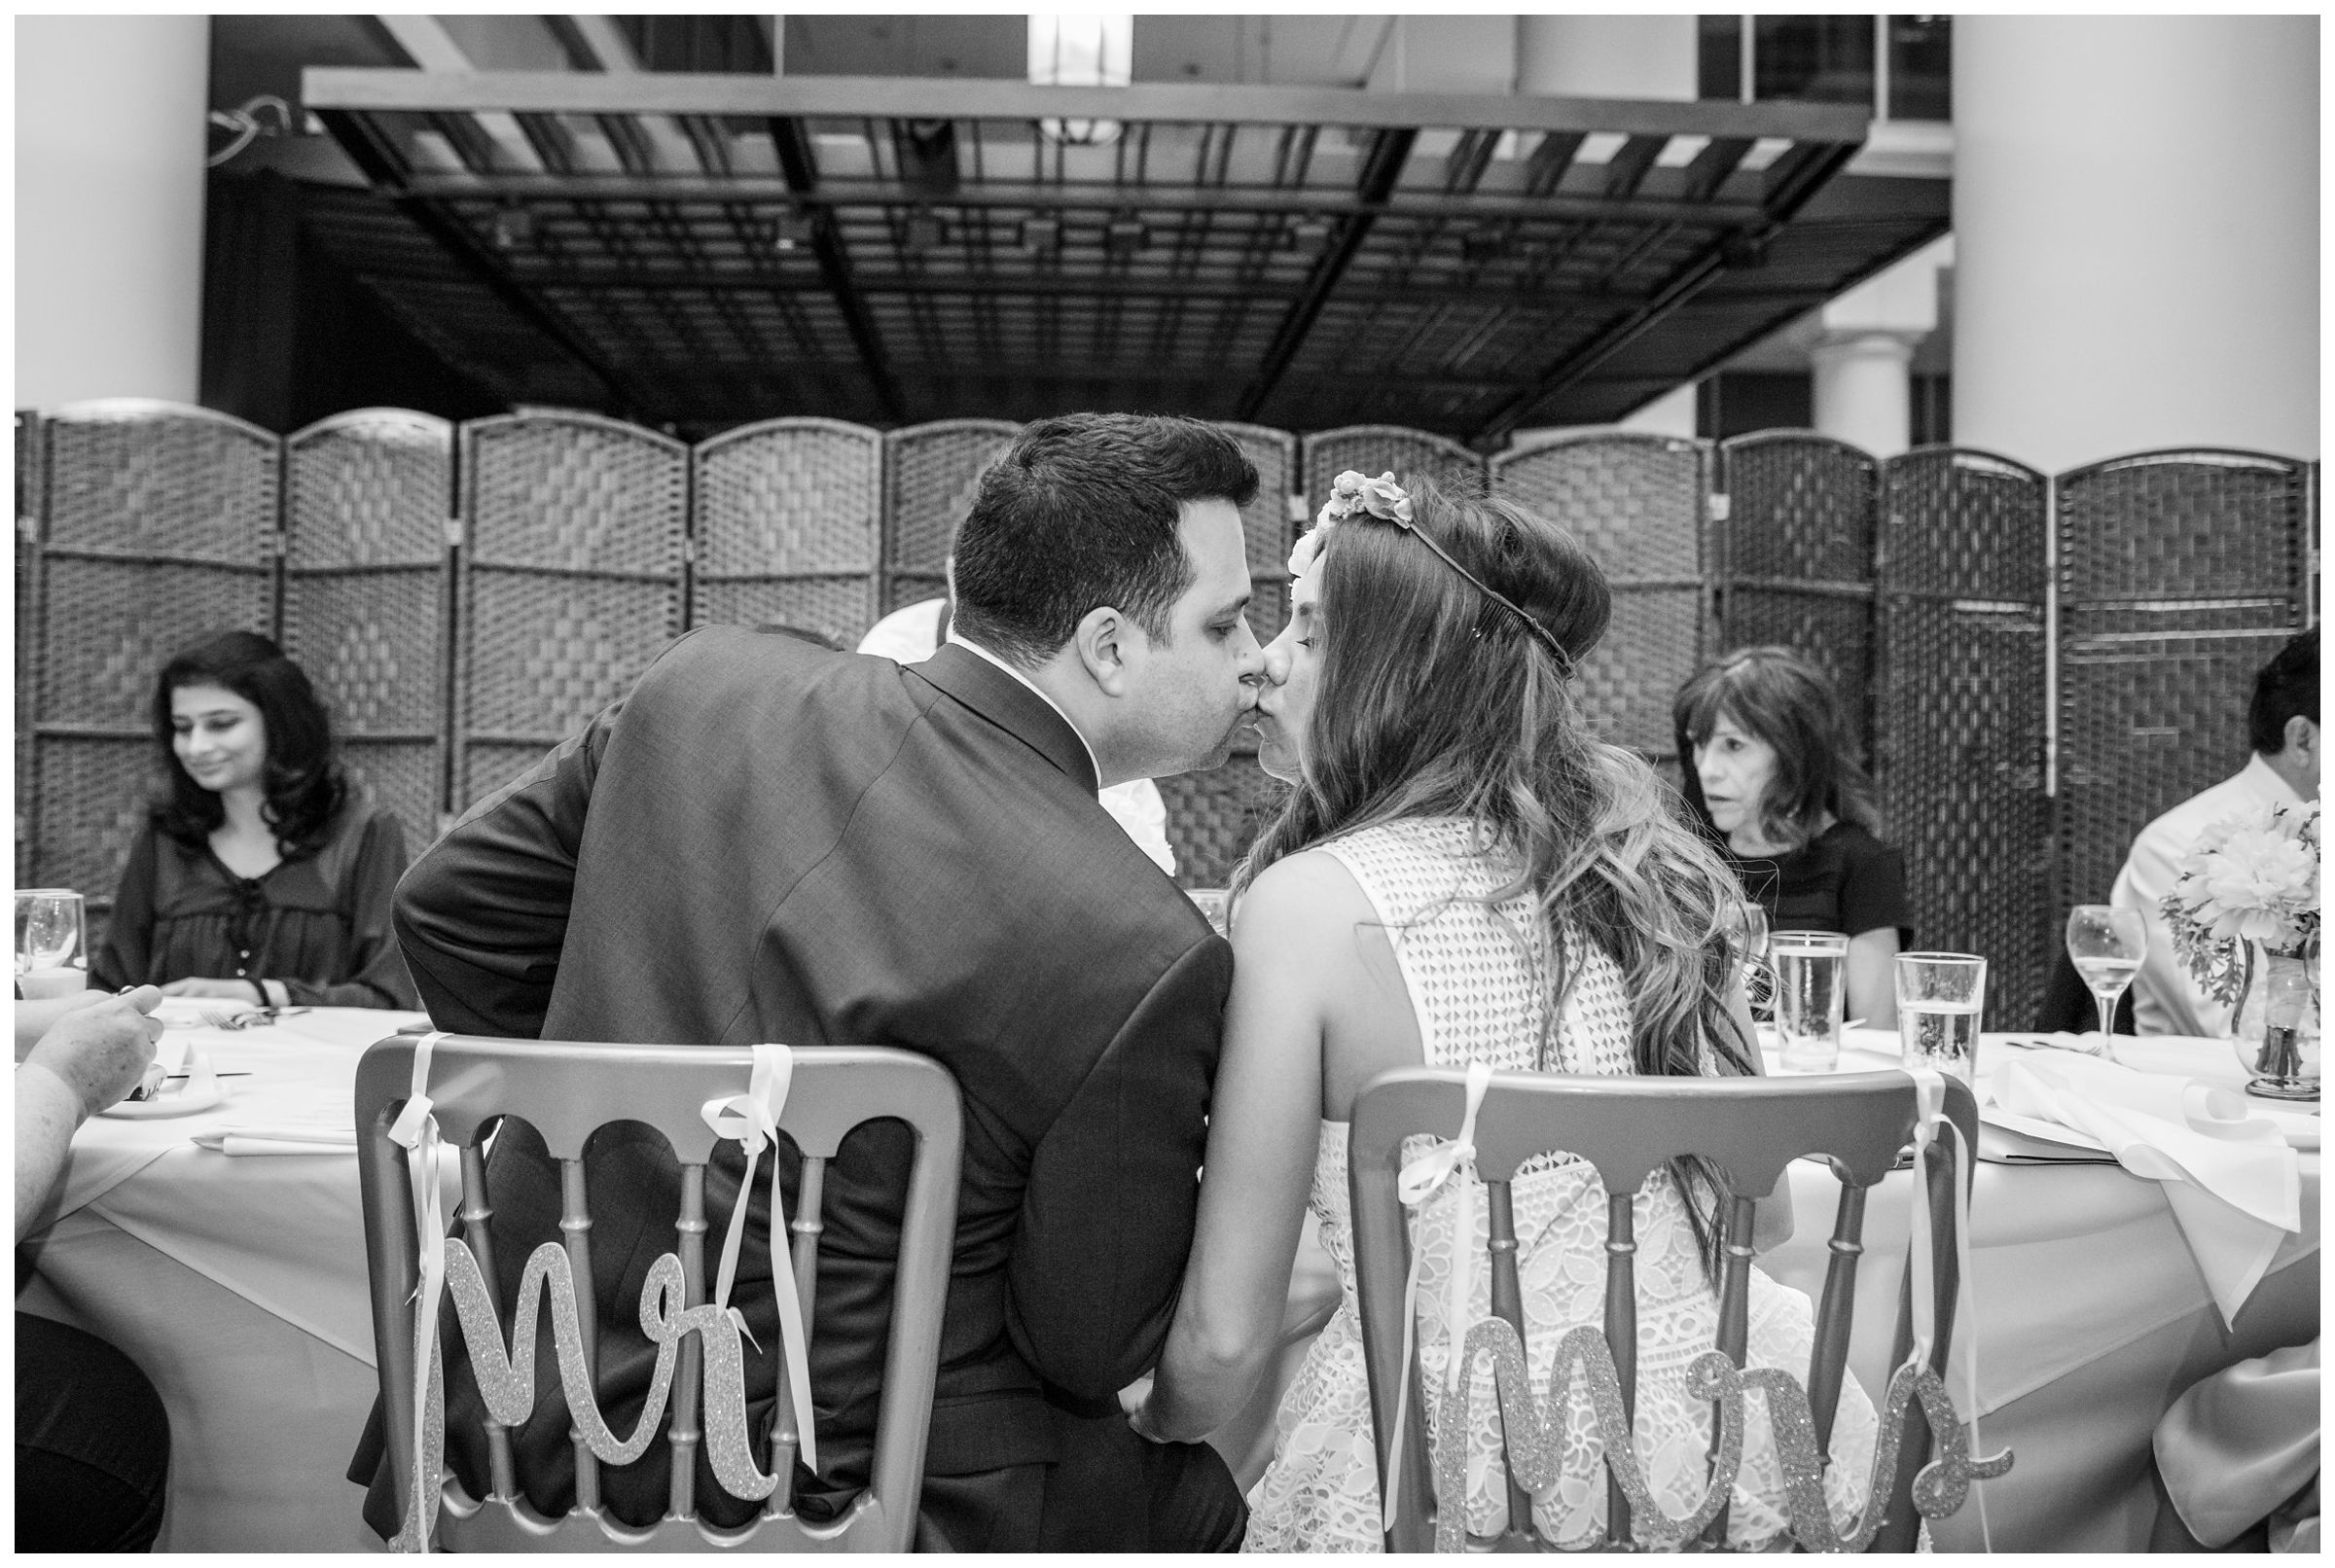 bride and groom kissing during intimate wedding reception dinner at Old Ebbitt Grill in Washington, D.C.